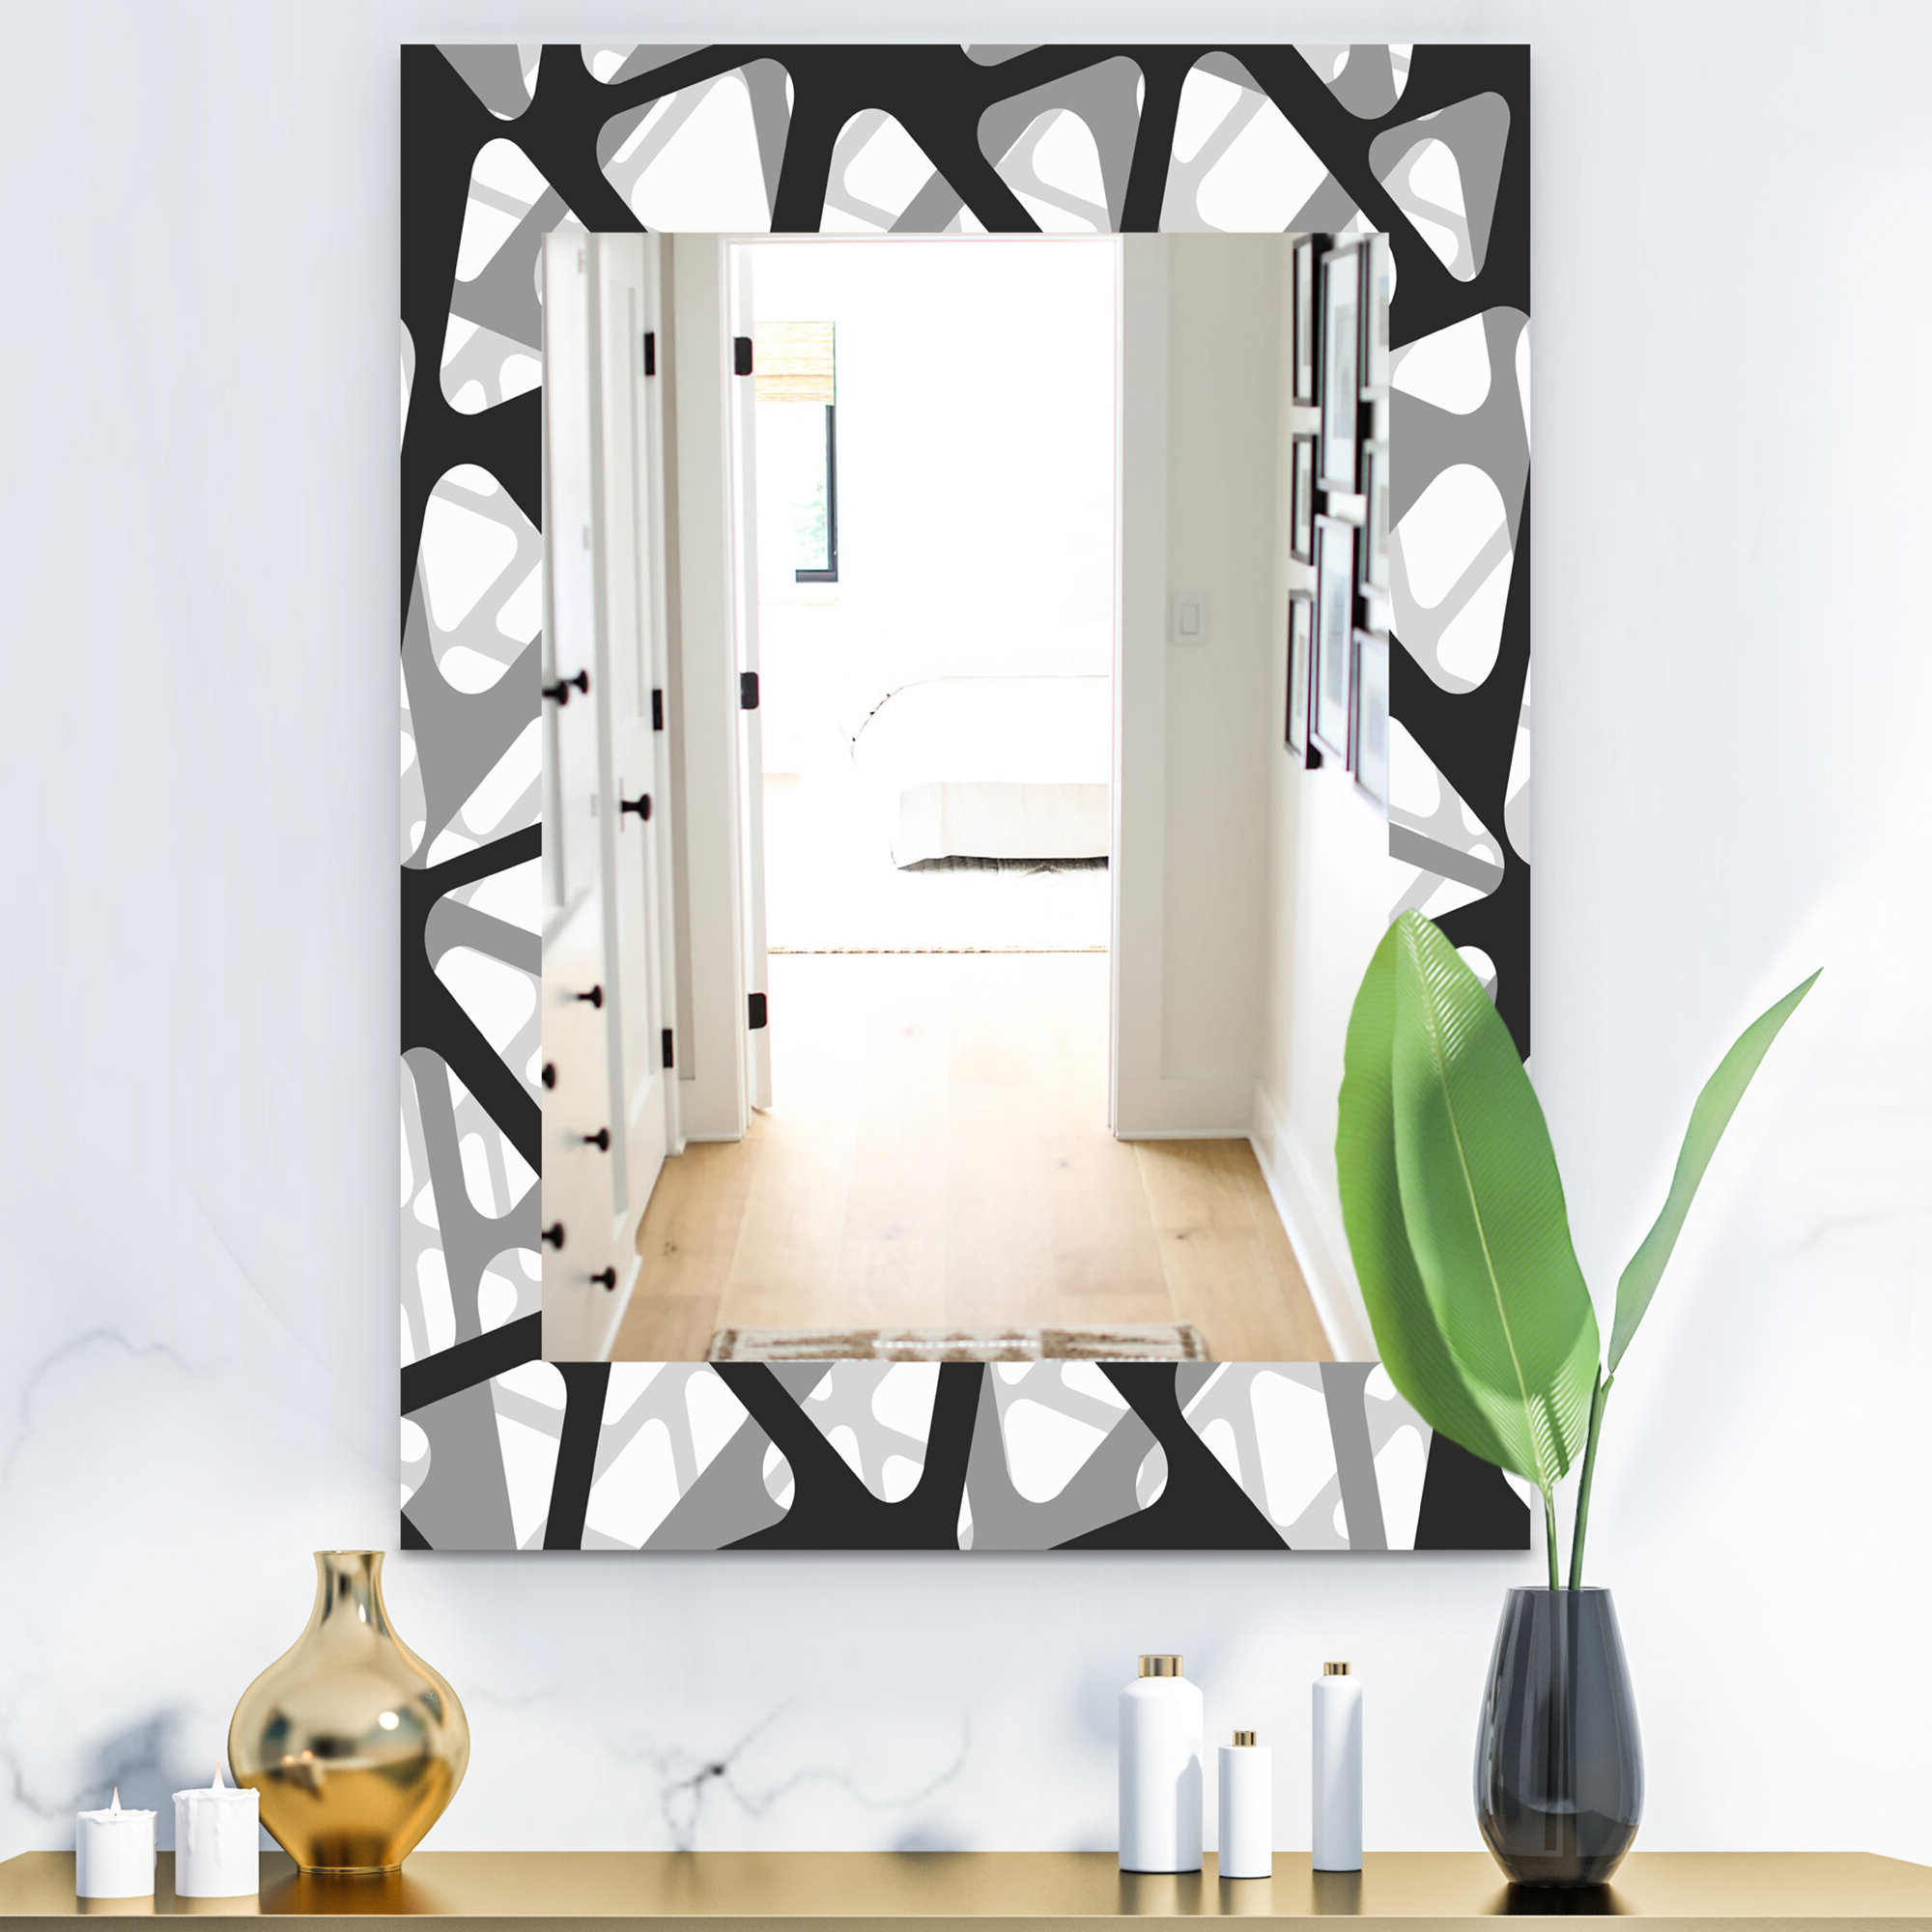 Famous Mid Century Modern Frameless Wall Mirror Pertaining To Mid Century Modern Wall Mirrors (View 8 of 20)